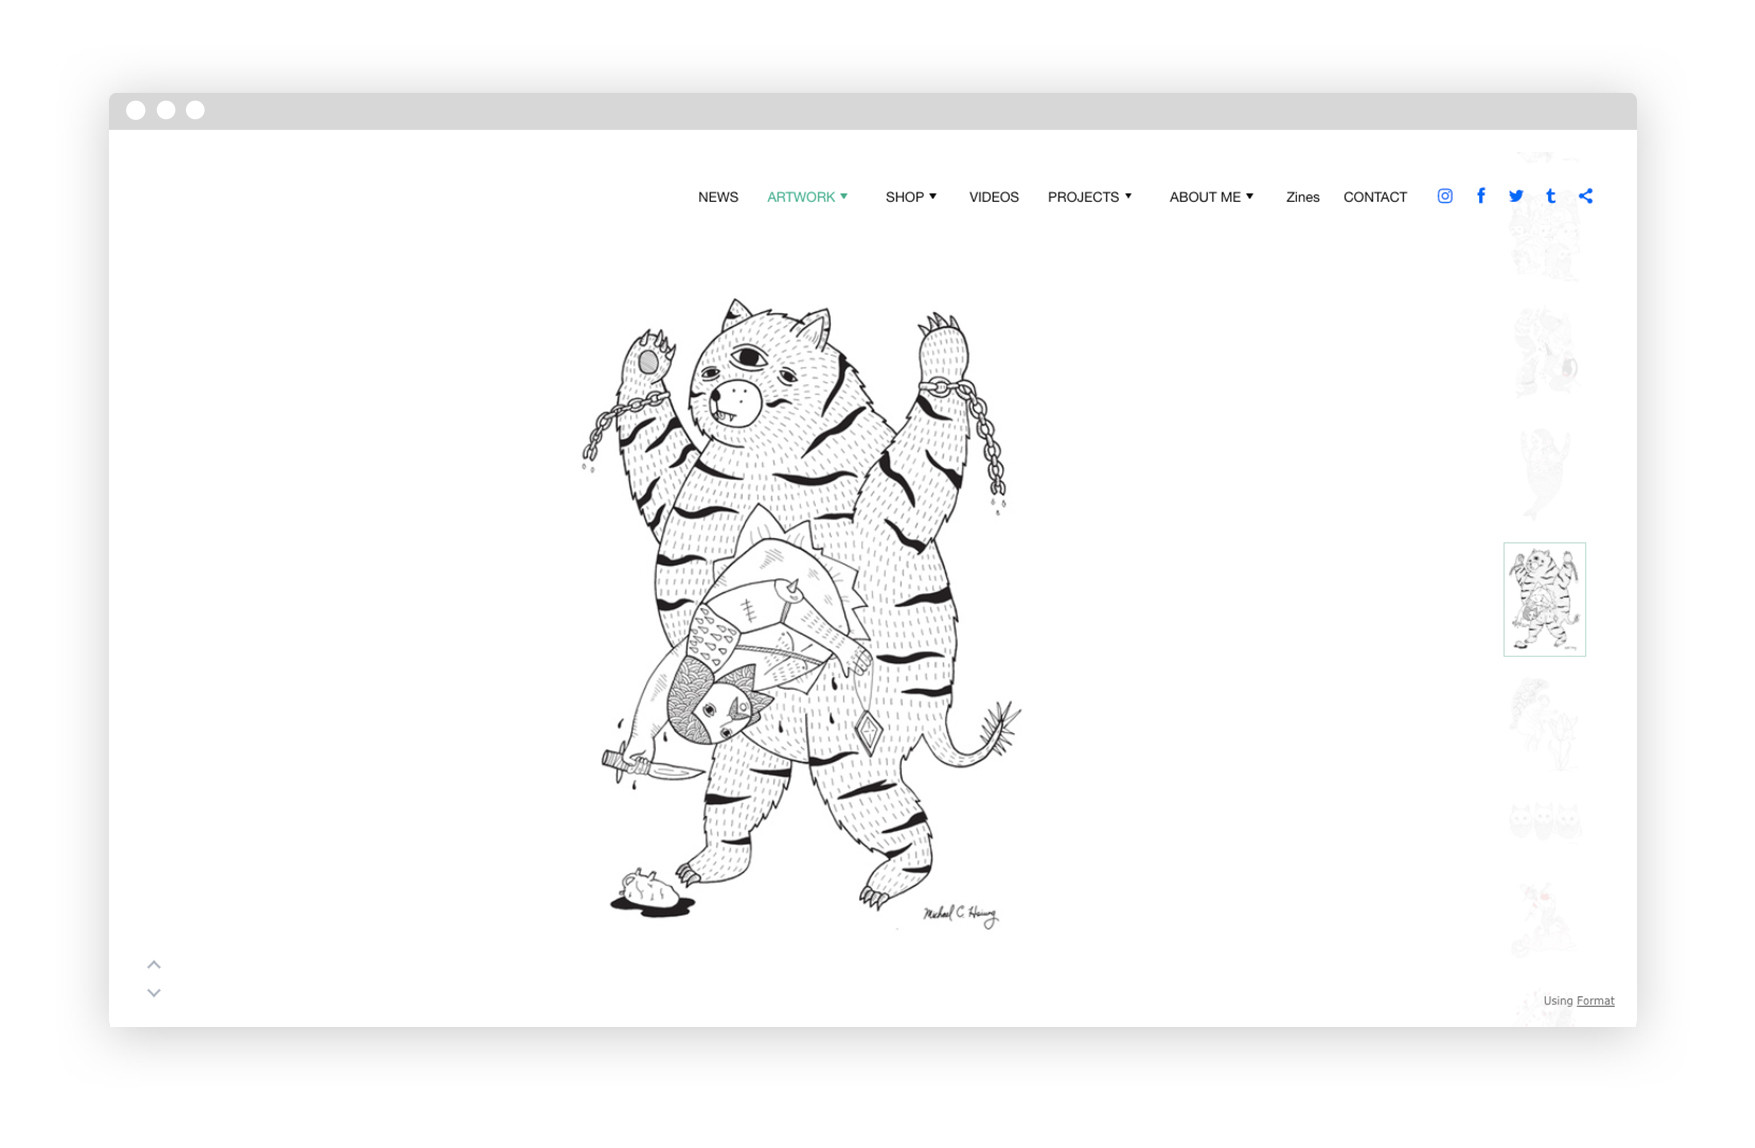 220d0b278 Click through and you ll find more of his portrait-style abstract  illustration work